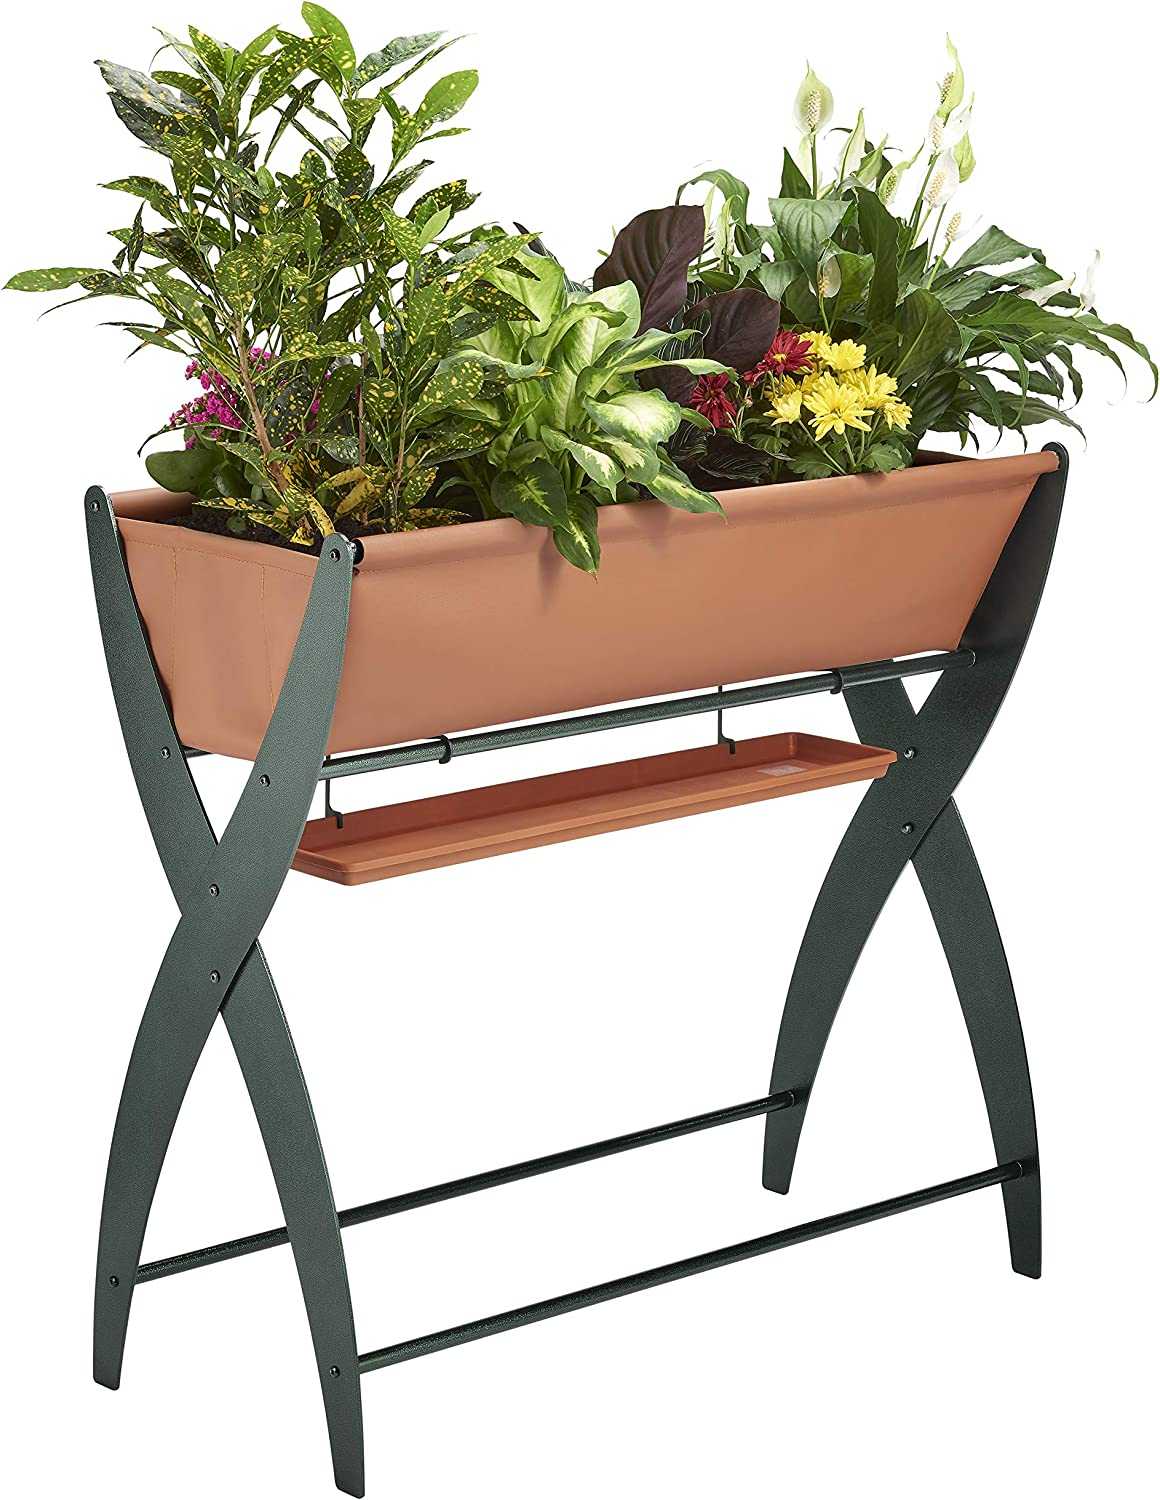 Planter Contemporary Green Direct sale OFFicial mail order of manufacturer Verde